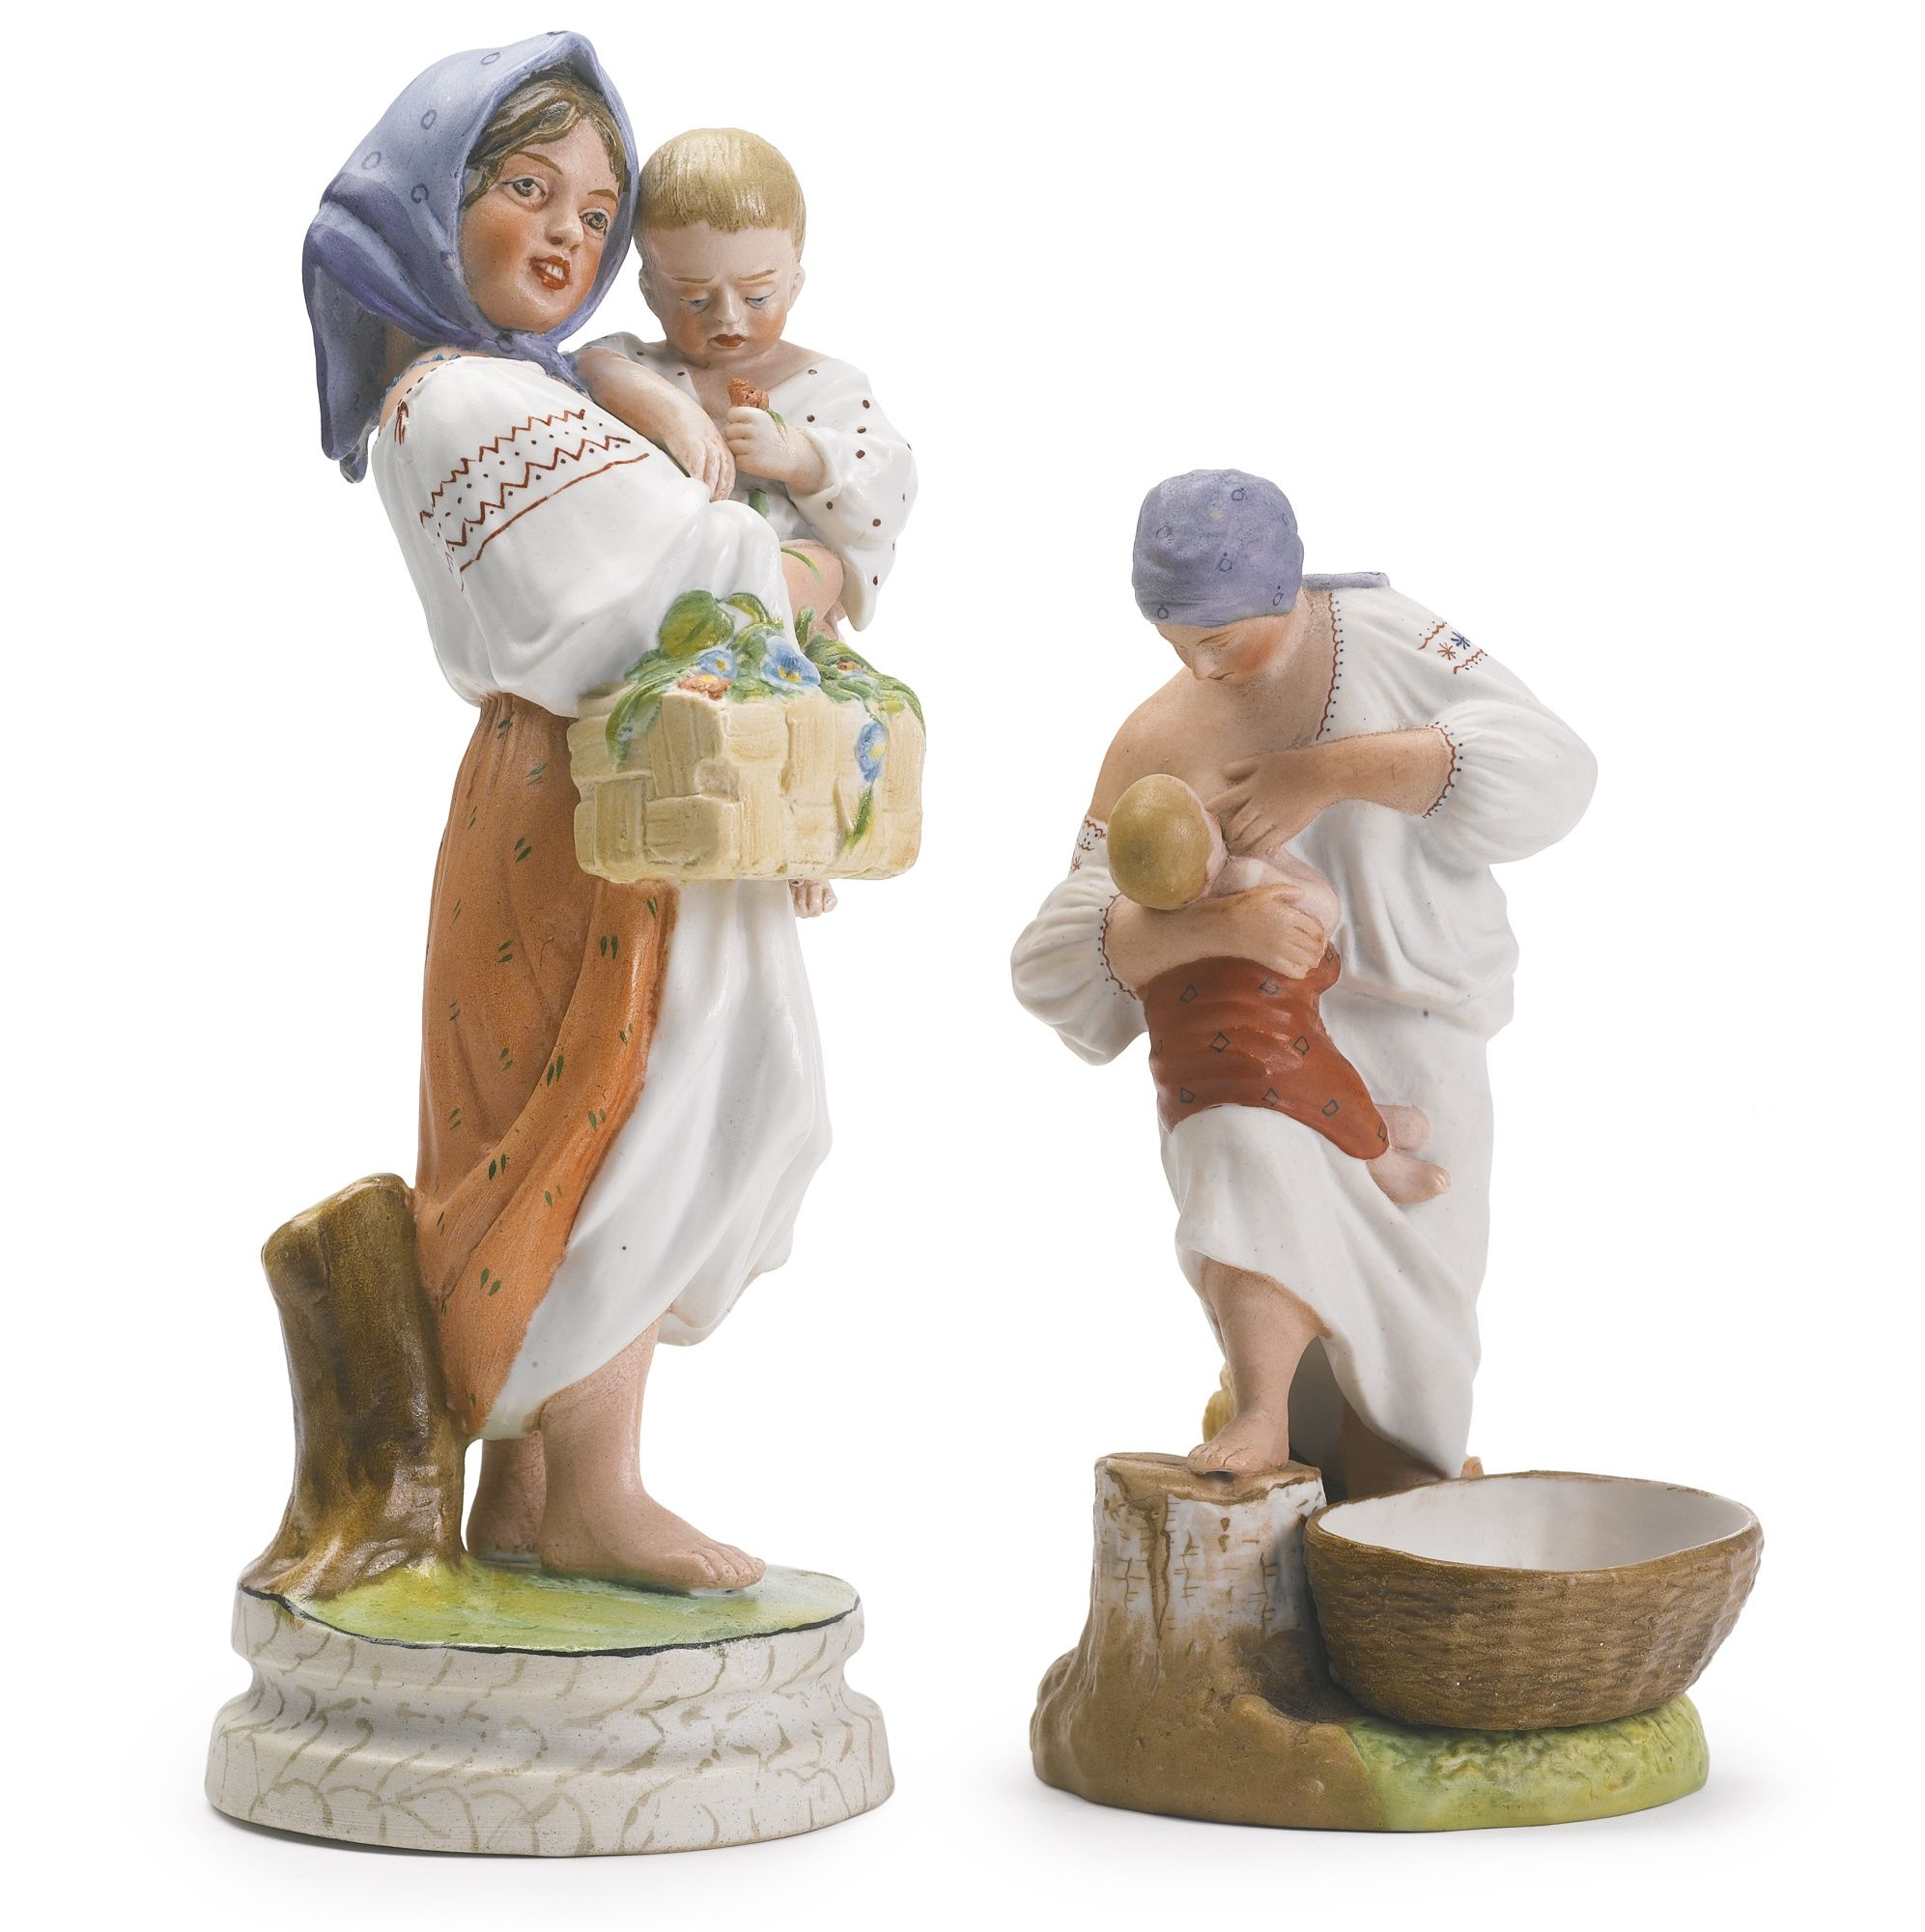 Two Russian porcelain figures, Gardner Porcelain Manufactory, Verbilki, circa 1870s, the first depicting a peasant girl holding an infant and a basket of flowers, the second depicting a peasant woman pausing from her work to feed her child, both with impressed factory marks and production numbers